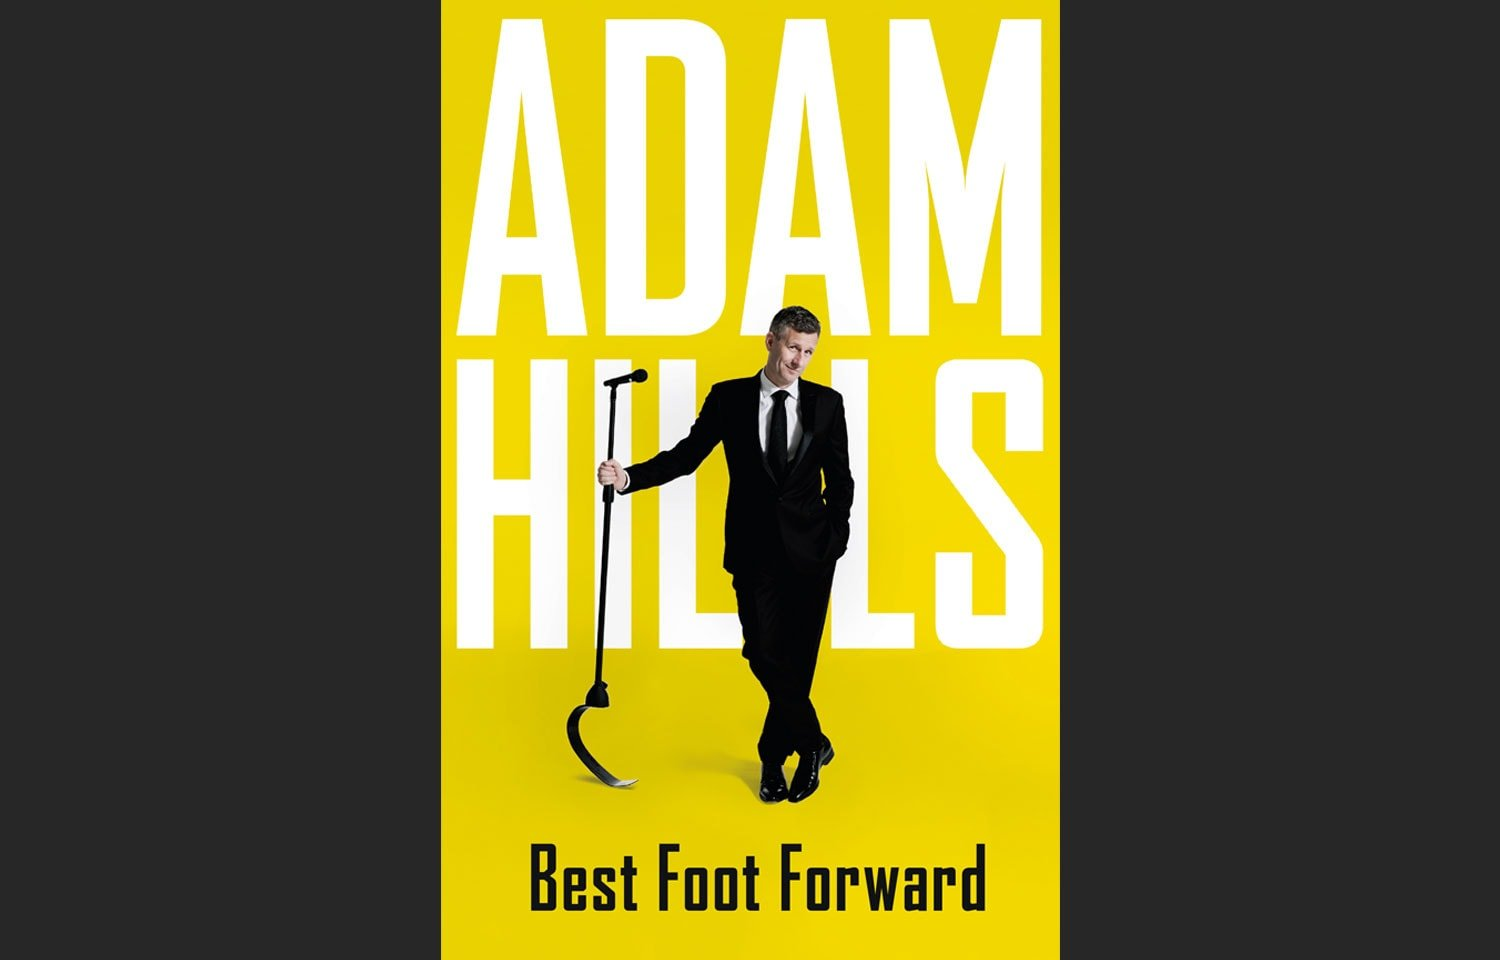 ADAM HILLS WRITES HIS FIRST BOOK! BEST FOOT FORWARD IS OUT NOW